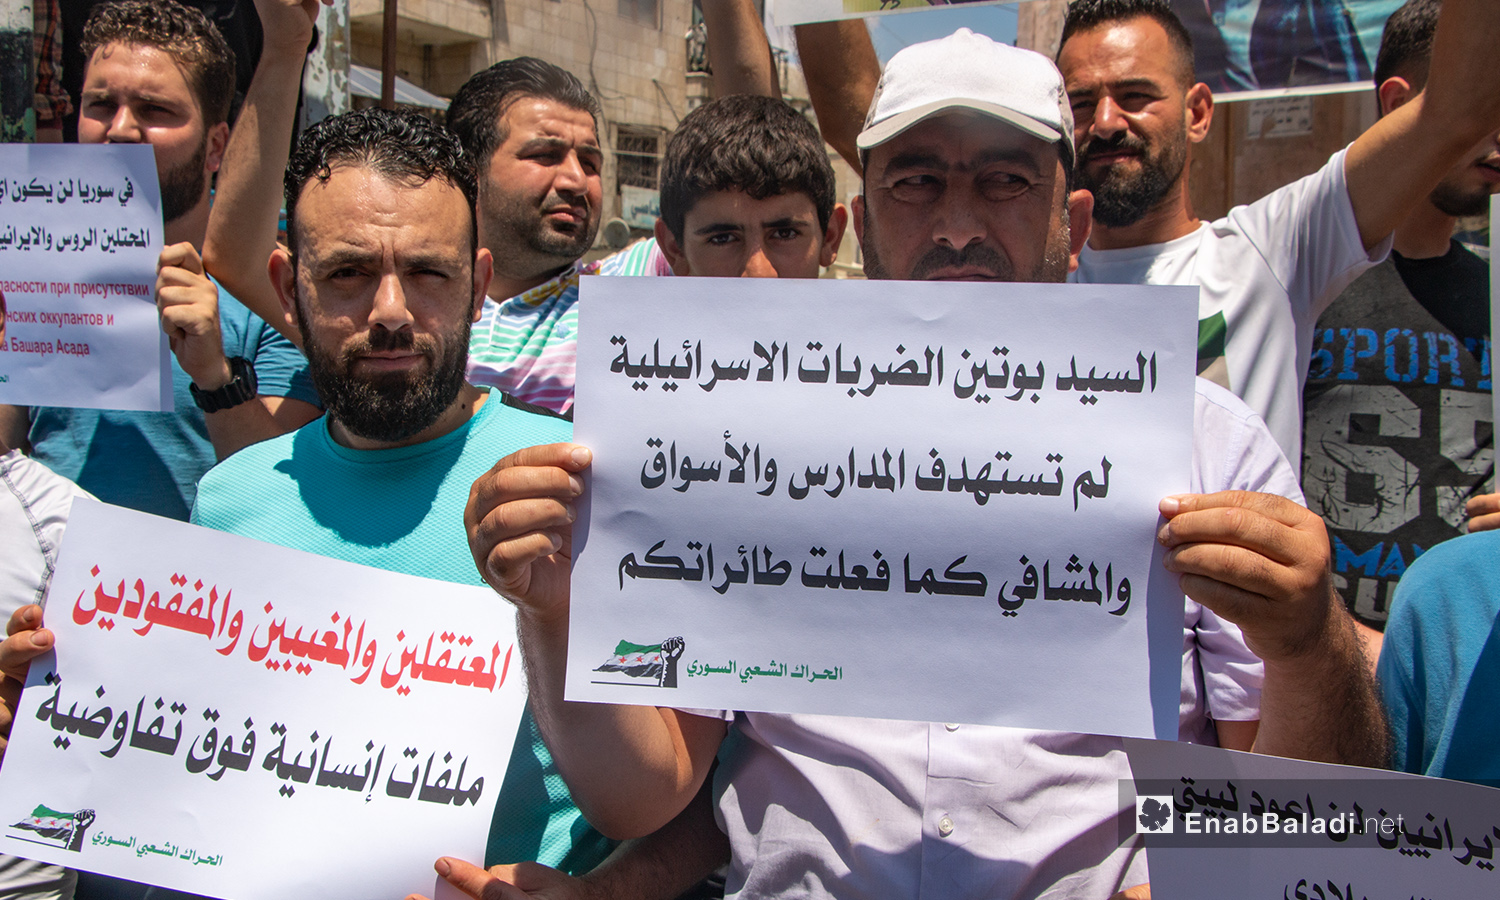 A man carrying a sign in which he addresses the Russian President Vladimir Putin. The sign says (Mr. Putin, the Israeli strikes did not target the schools, markets, and hospitals as the Russian warplanes did) – 03 July 2020 (Enab Baladi / Anas al-Khouli)